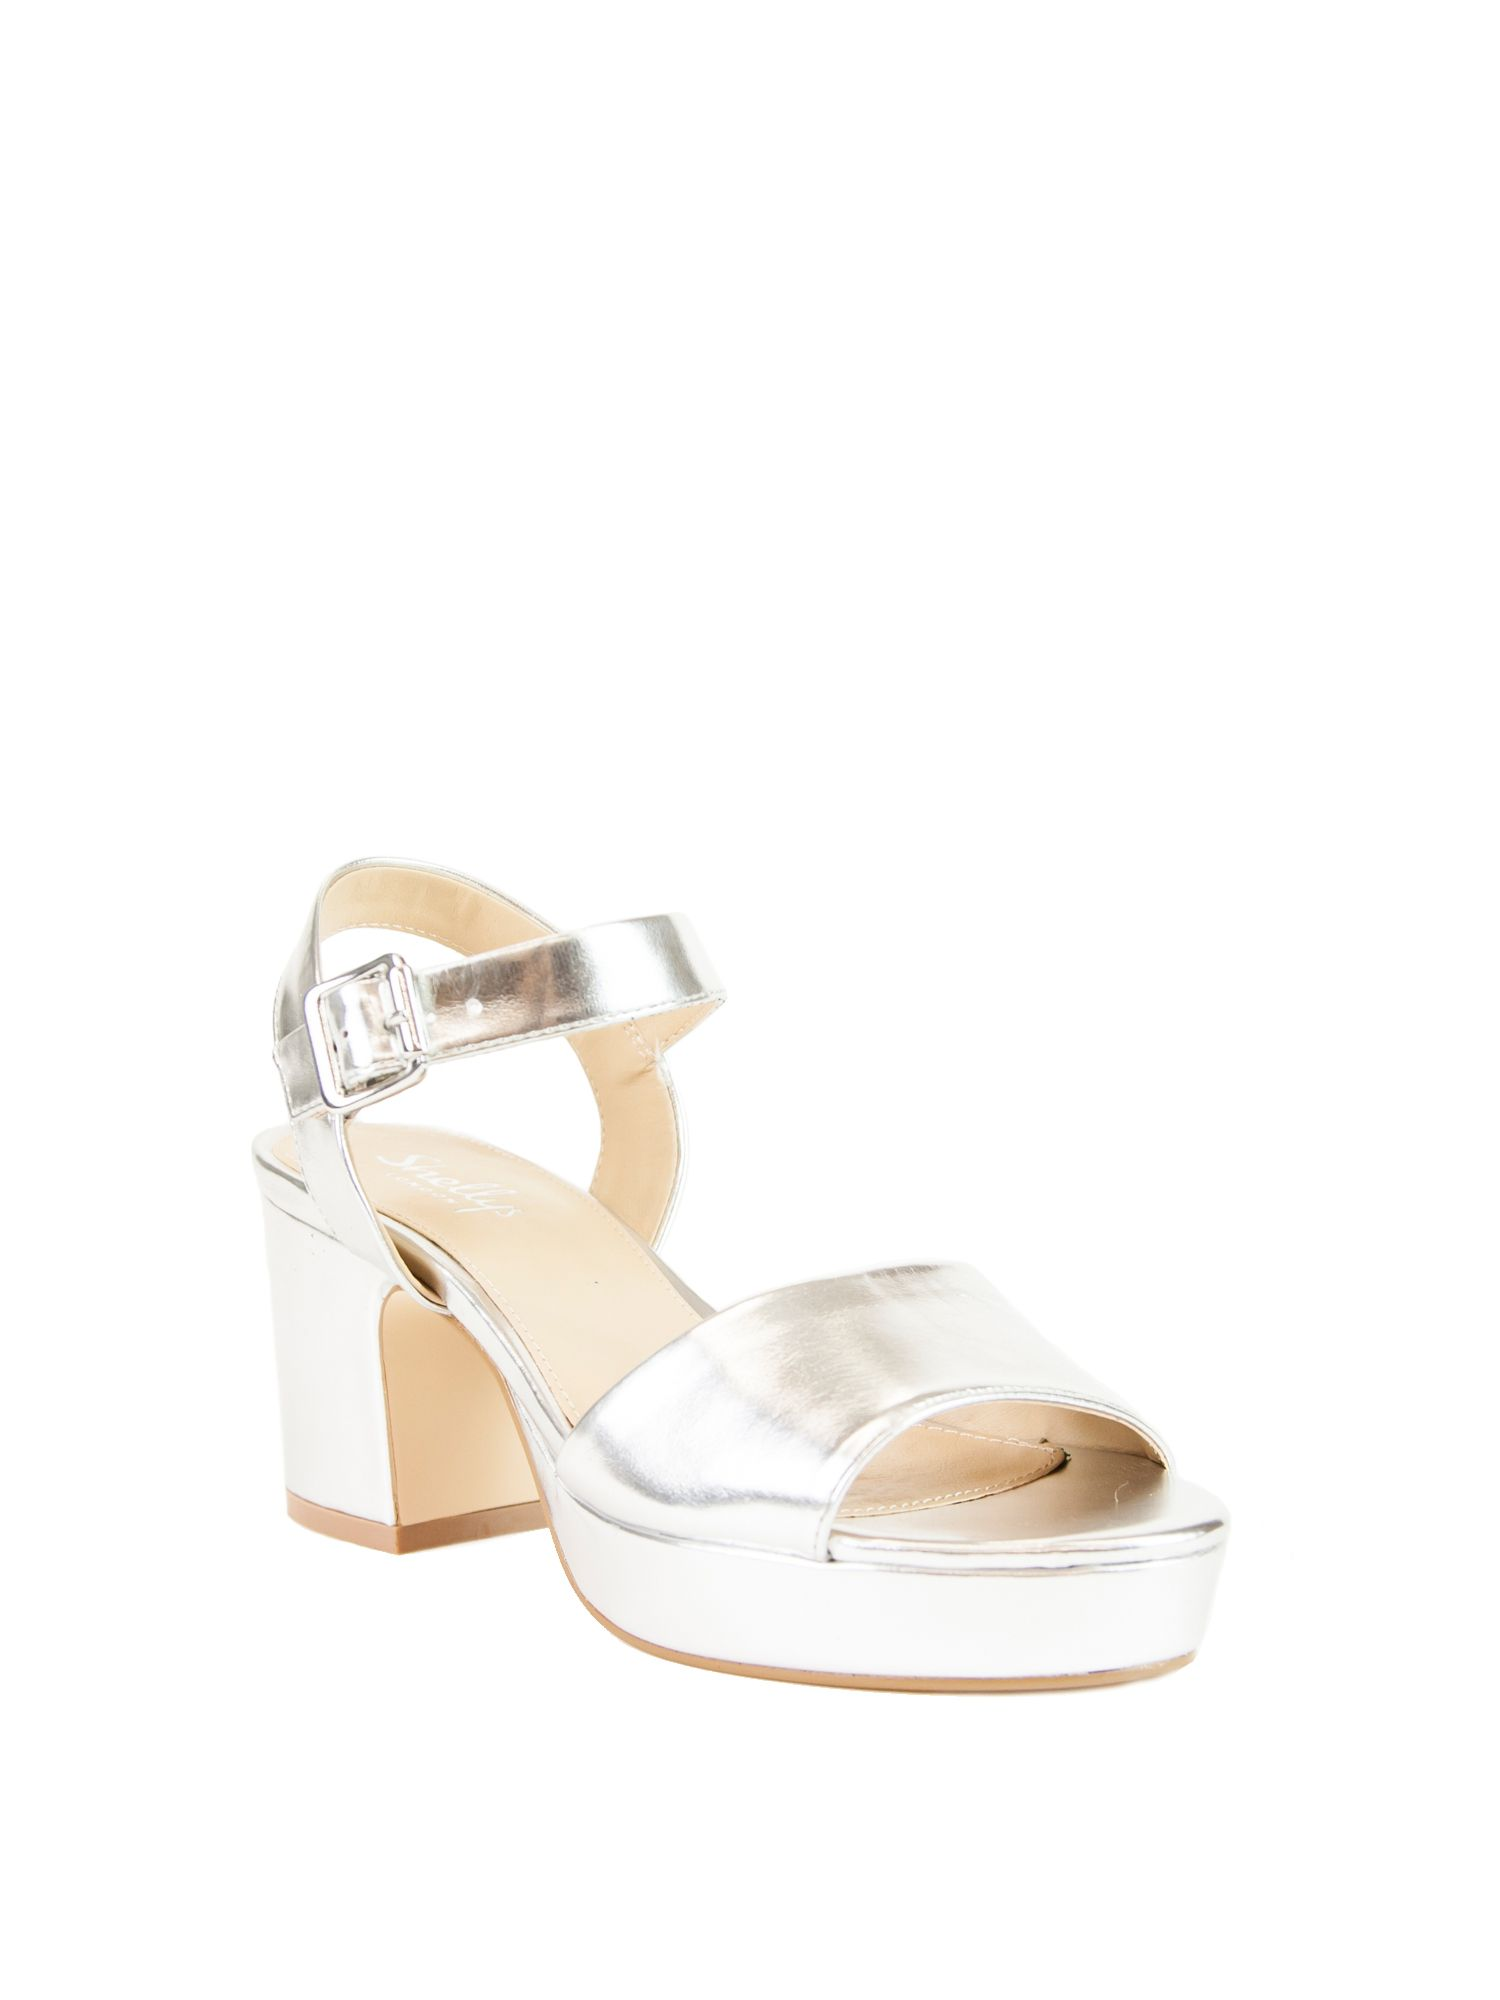 Shellys London Diggy low block heels, Silverlic